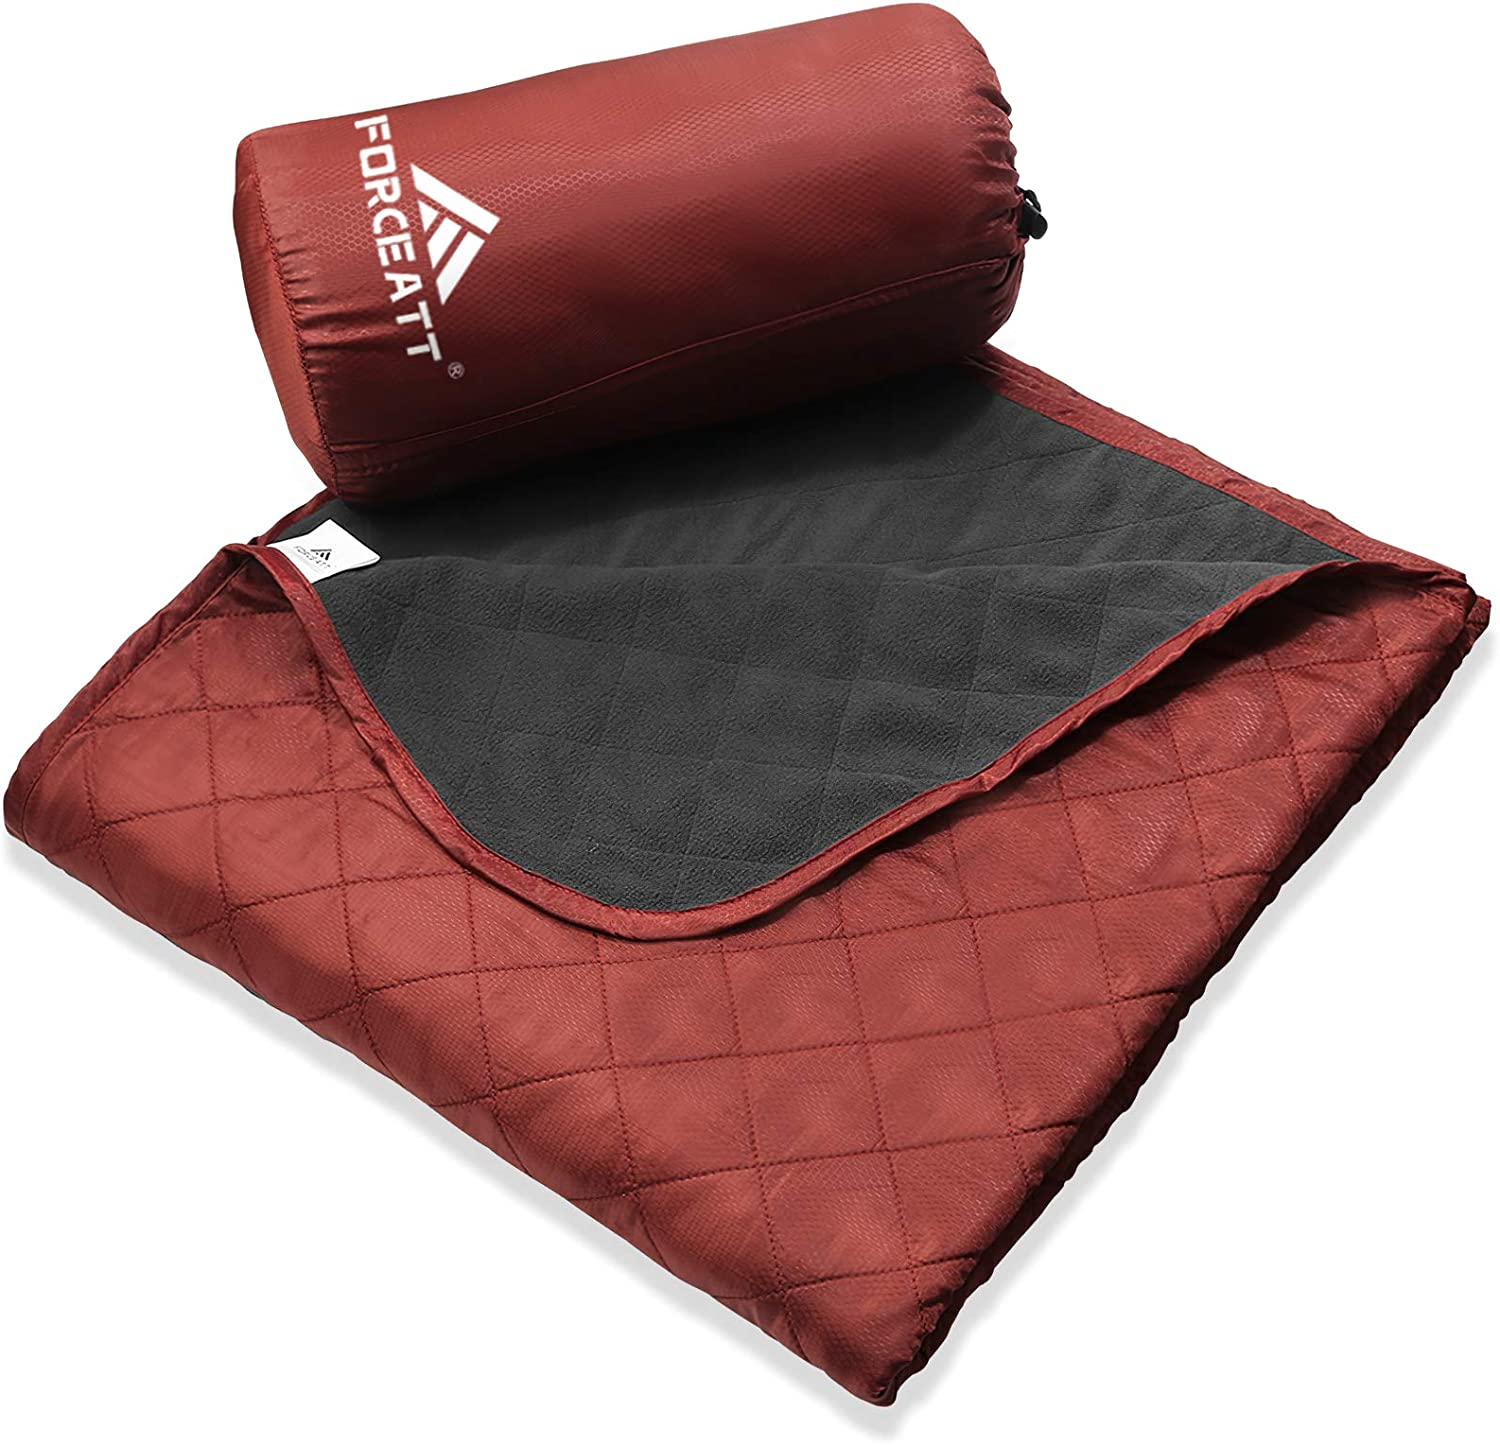 Forceatt Camping Blanket, Compact Picnic Blanket/Outdoor blanke, Tear Resistant, for Outdoor Festivals, Beaches, picnics, Stadium,Camping, Parks, Hiking, Travel, Family Suitable for Four Seasons